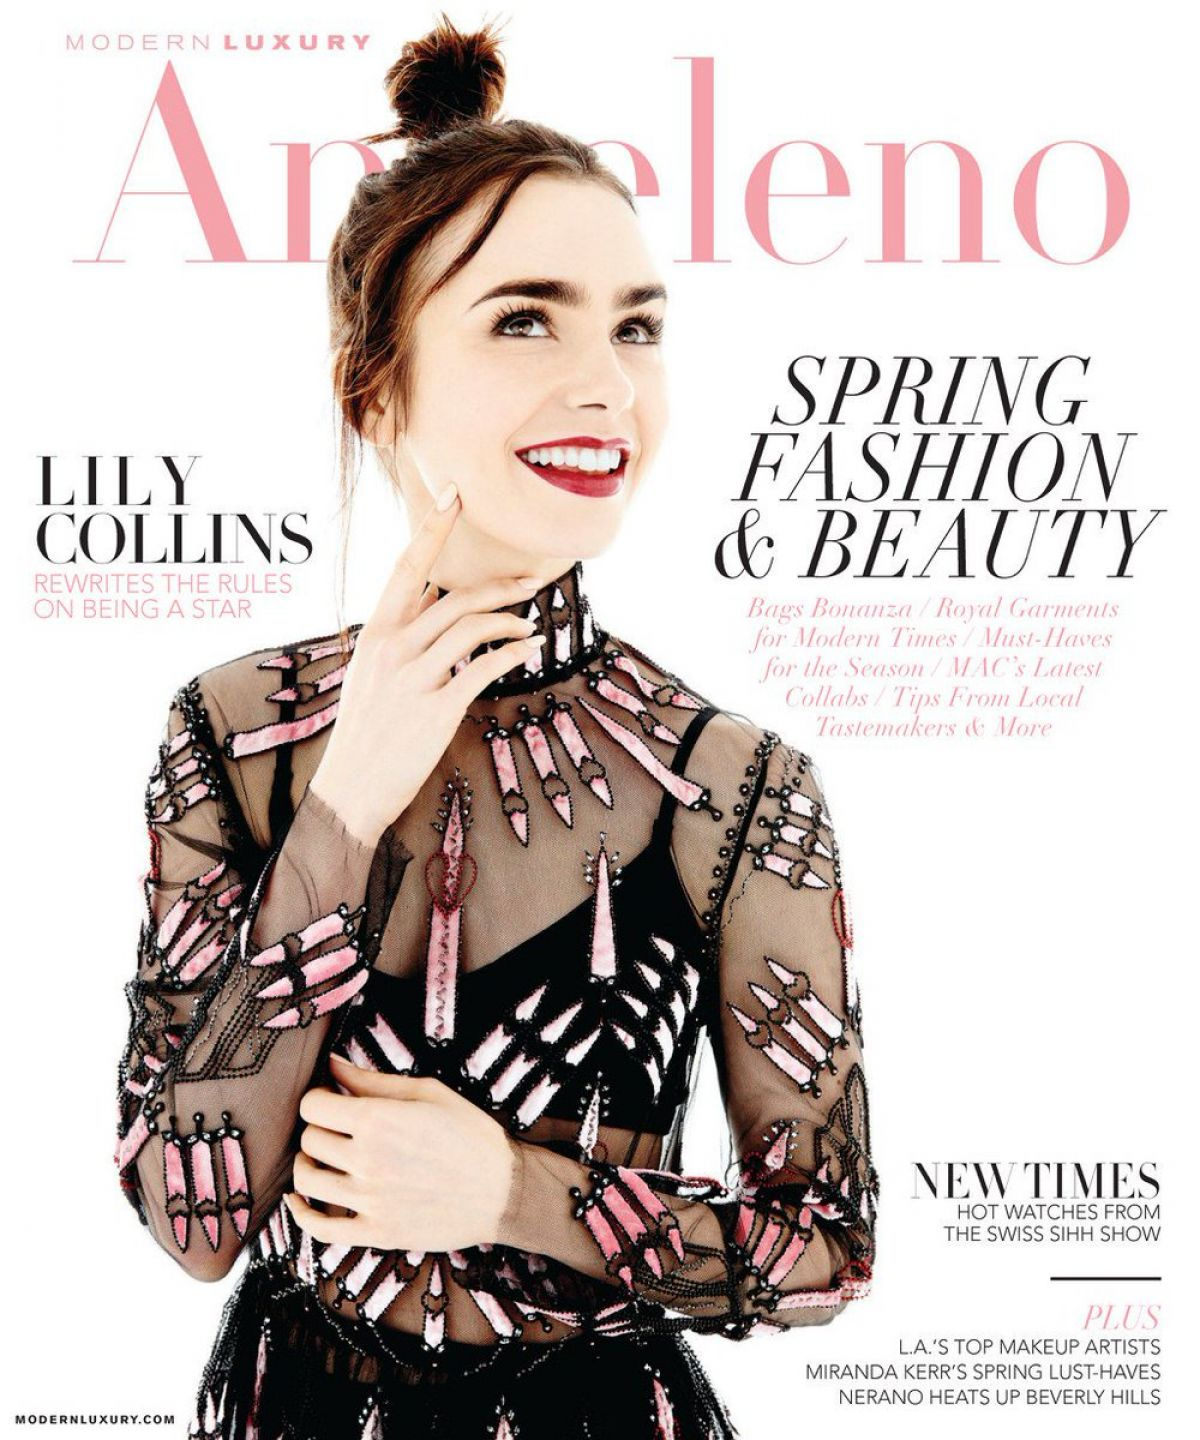 lily-collins-in-angeleno-magazine-march-2017.jpg